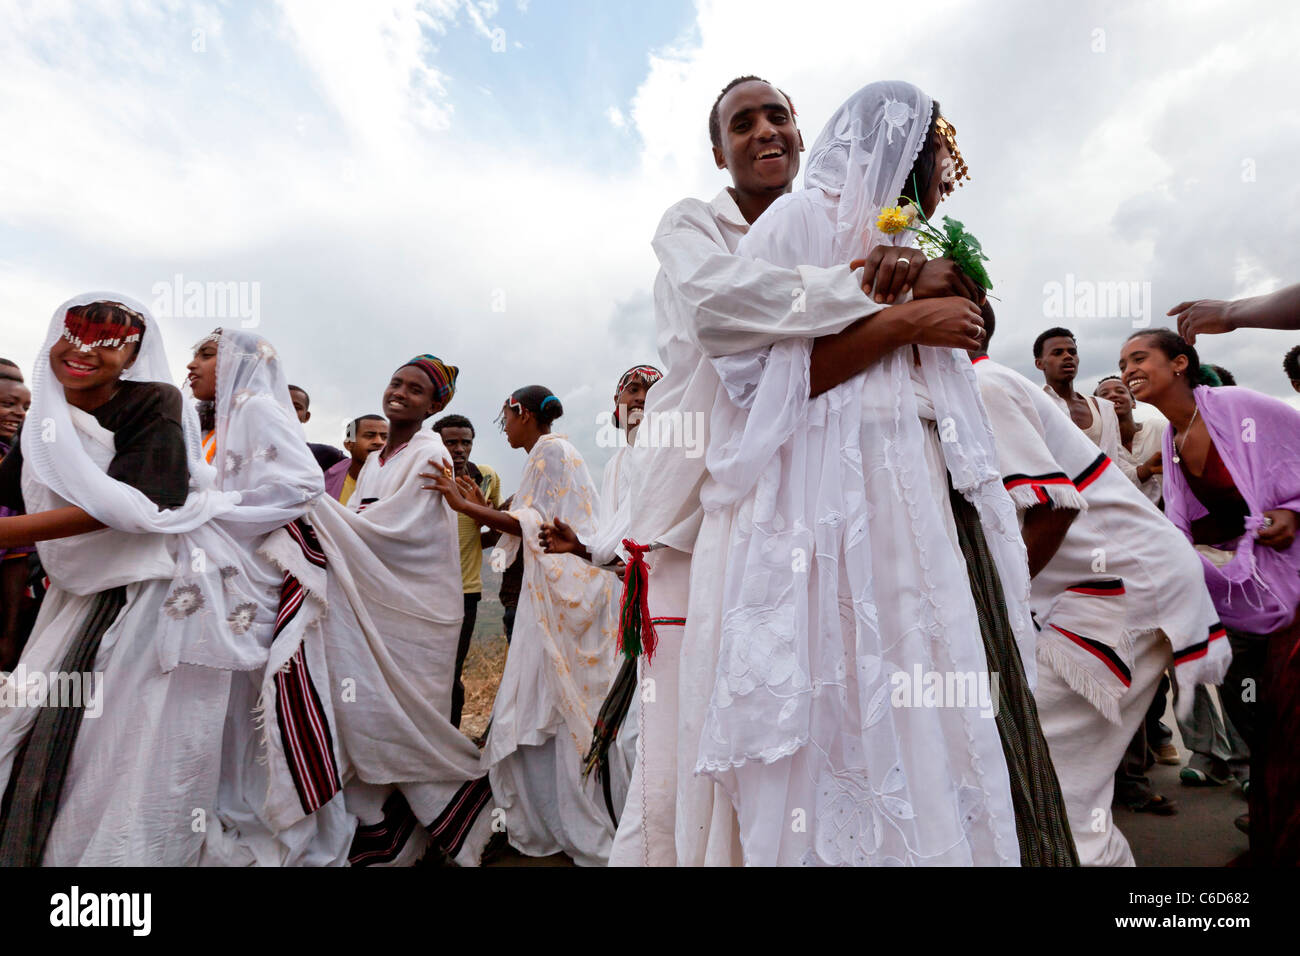 Traditional Oromo wedding celebrations taking place on the road to Harar in the Eastern Highlands, Ethiopia, Africa. Stock Photo